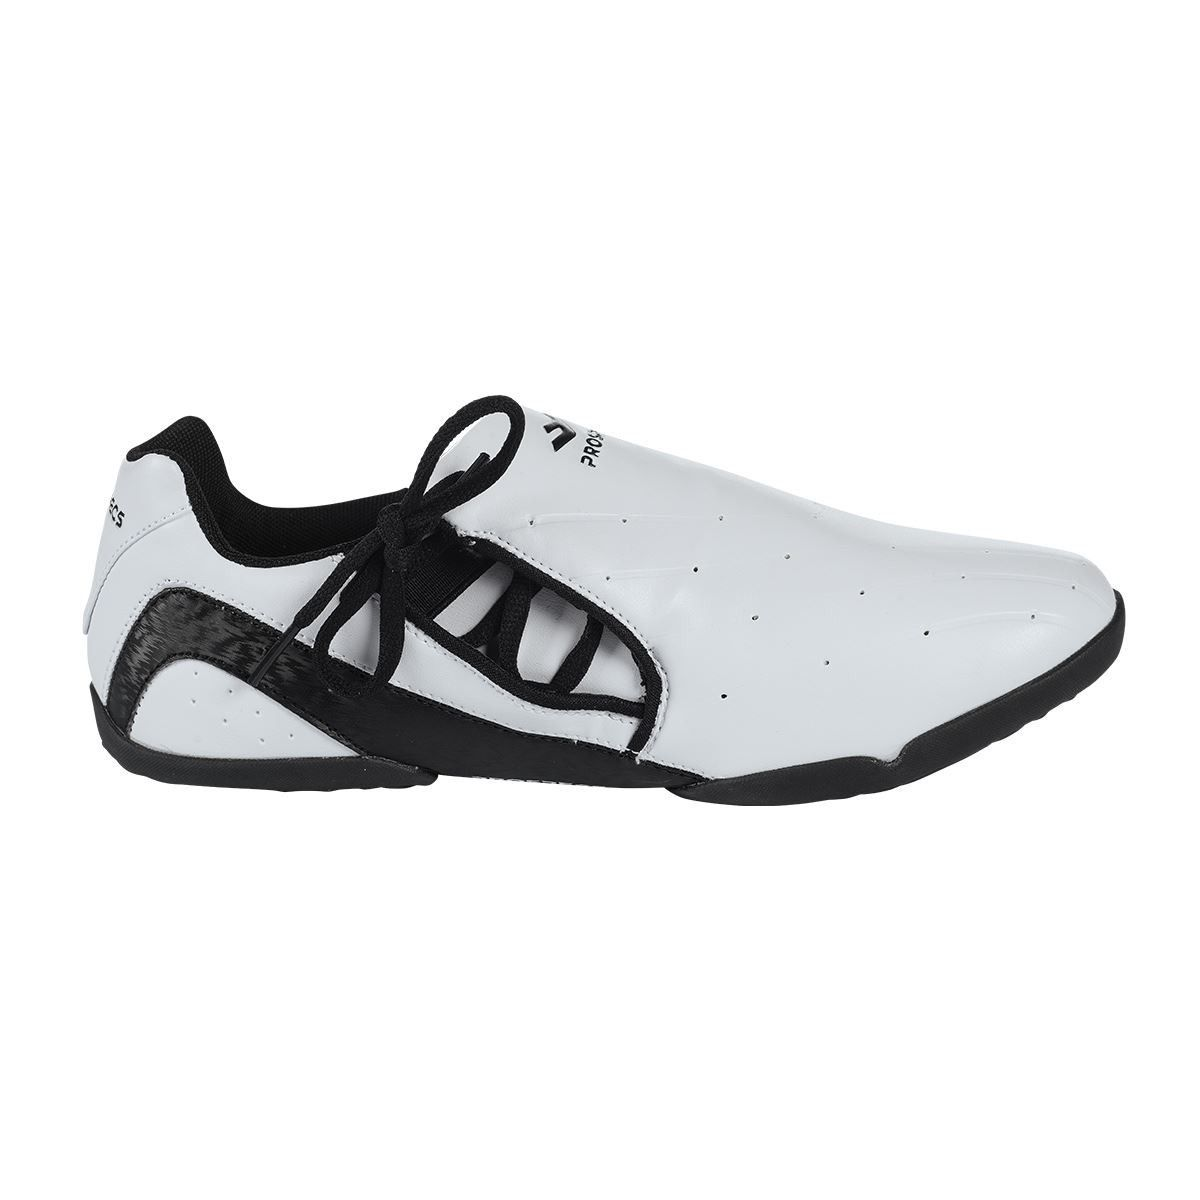 Prospecs Lace Up Shoe These Leather Taekwondo Shoes By Prospecs Are Great For Martial Arts Work On The Mat Shoes Lace Up Taekwondo Shoes Lace Up Shoes Shoes